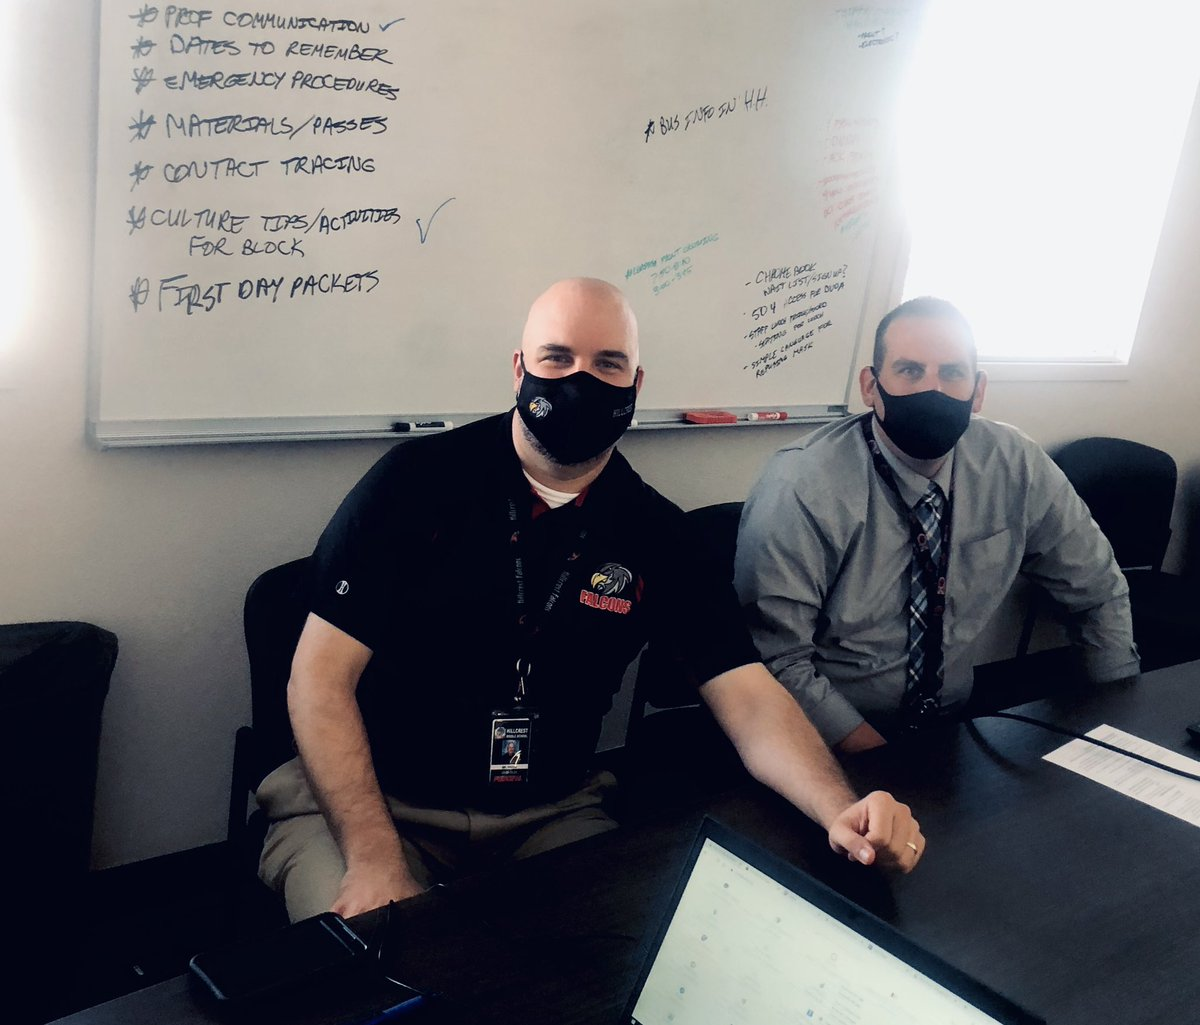 The administrative team at Hillcrest Middle School @thedigitalnest is putting all the details together as they prepare to open their doors to 7th grade students next week! @DVUSD https://t.co/tRBl9wtPKa